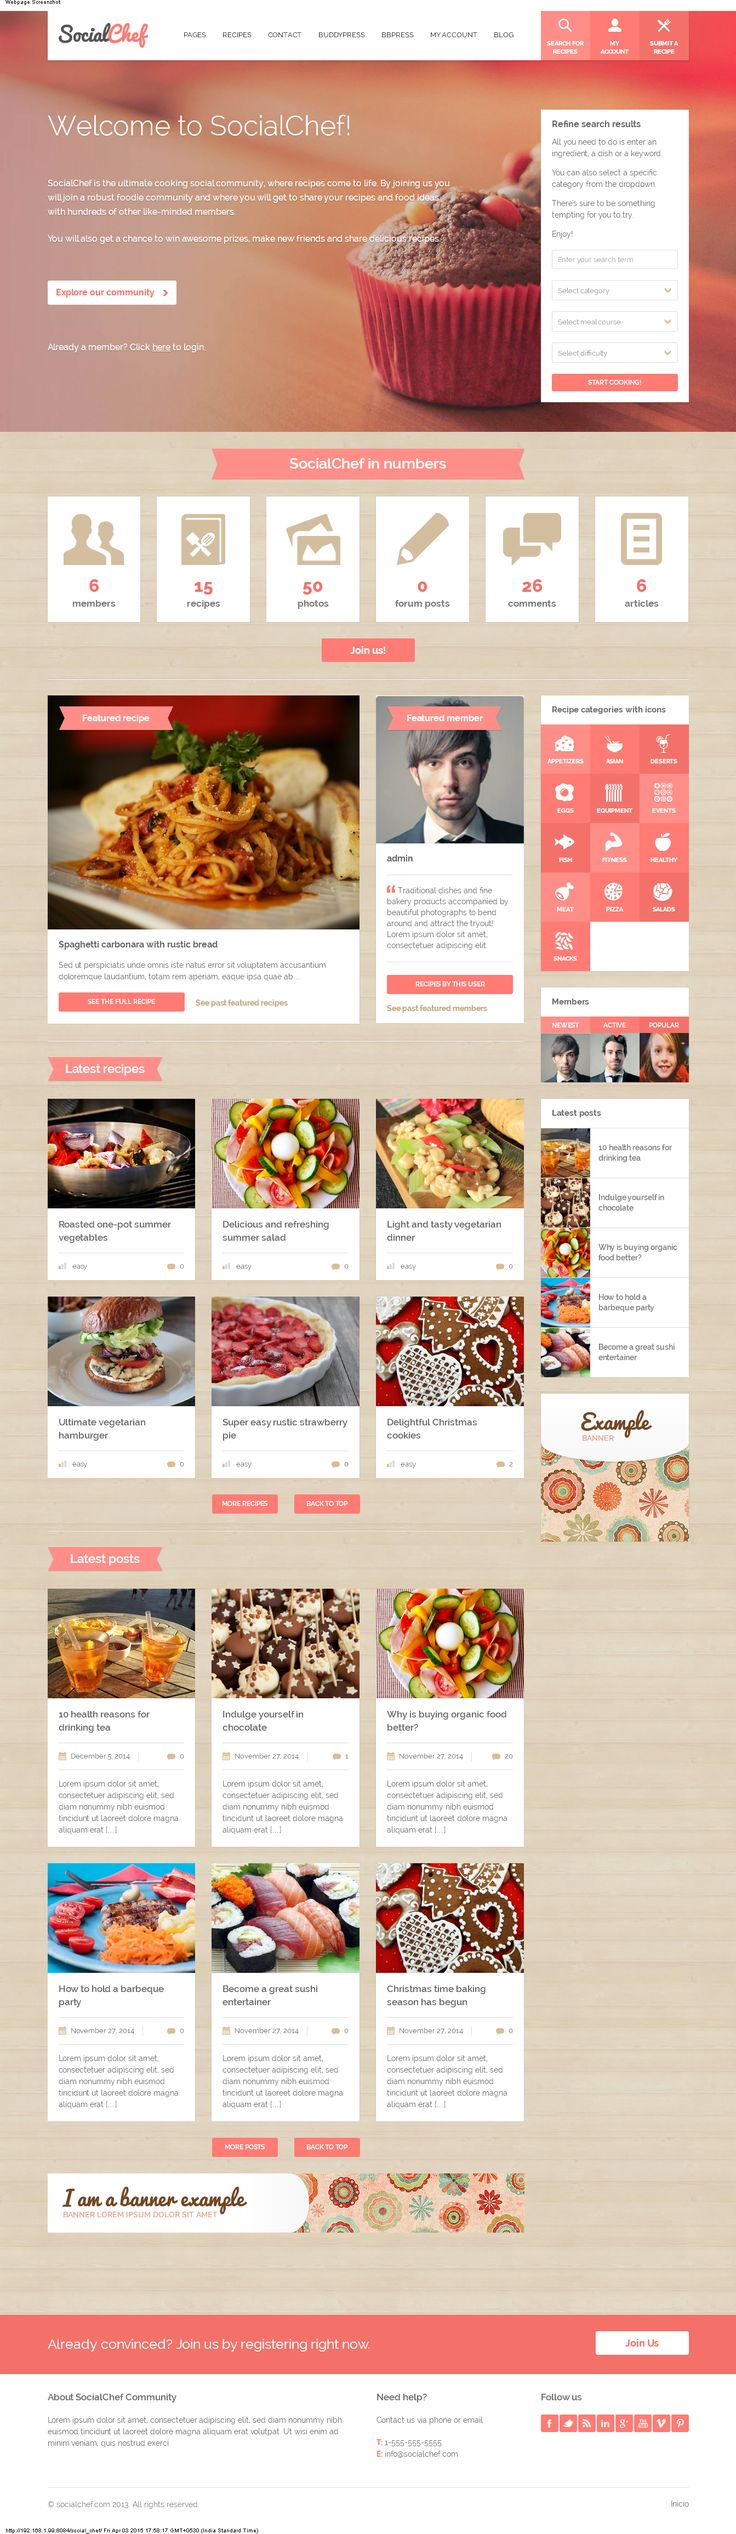 Developed in wordpress, useful for the cooking lovers. The users can submit their recipe and show their talent. Other users can comment share the recipe.